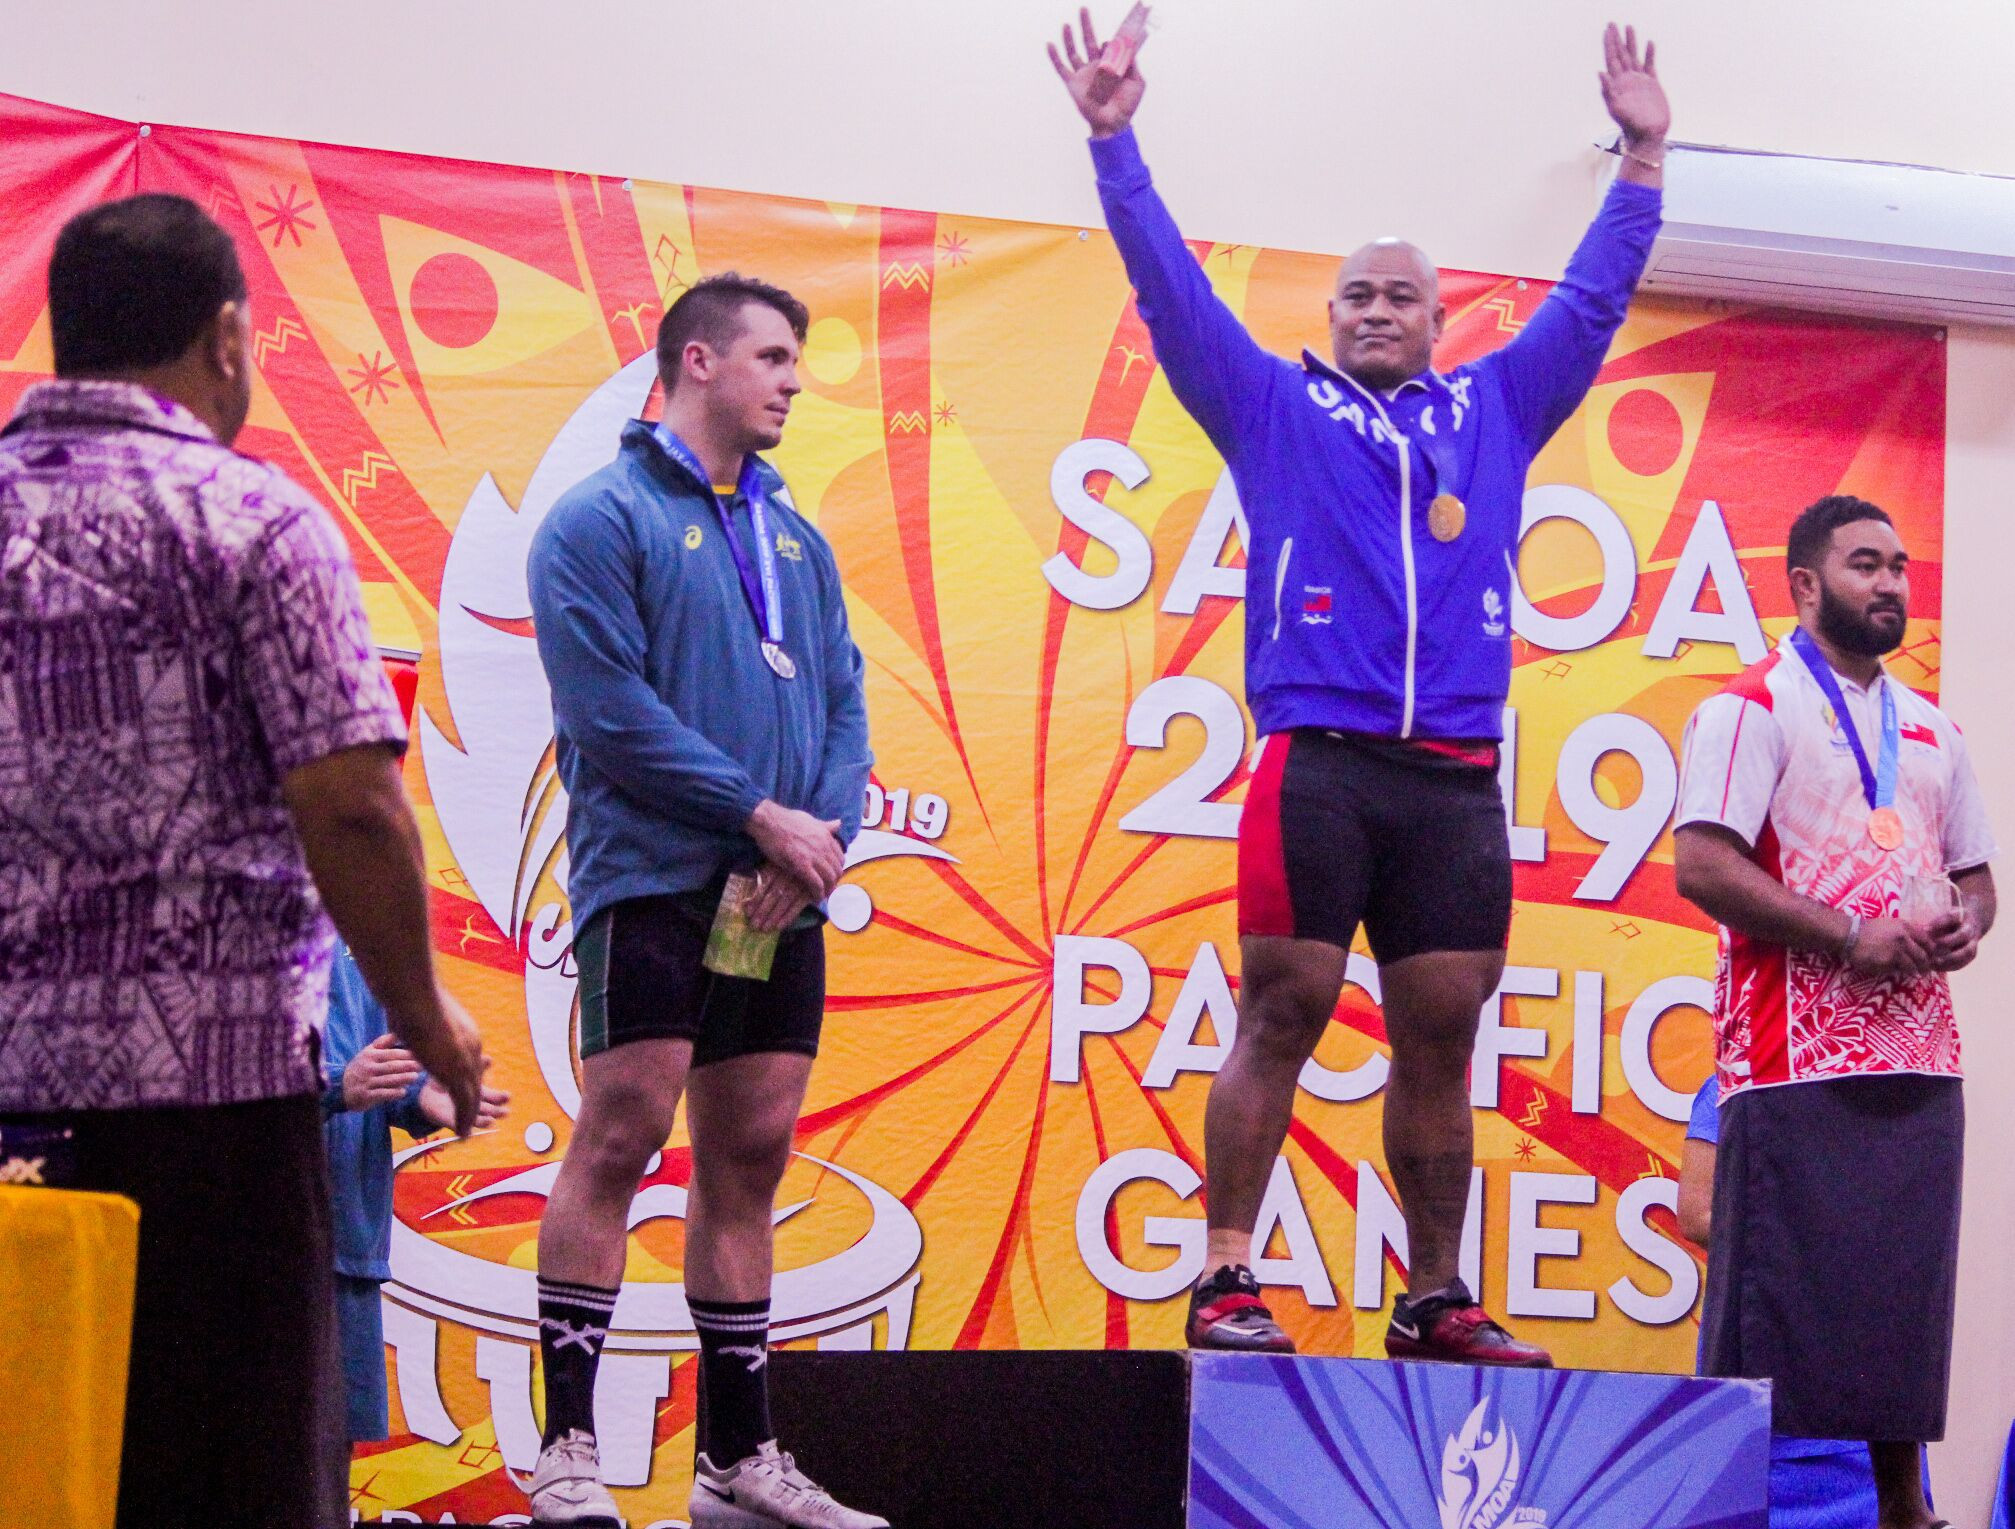 Samoa's Sanele Mao swept to all three golds in the men's 109kg category ©Samoa 2019